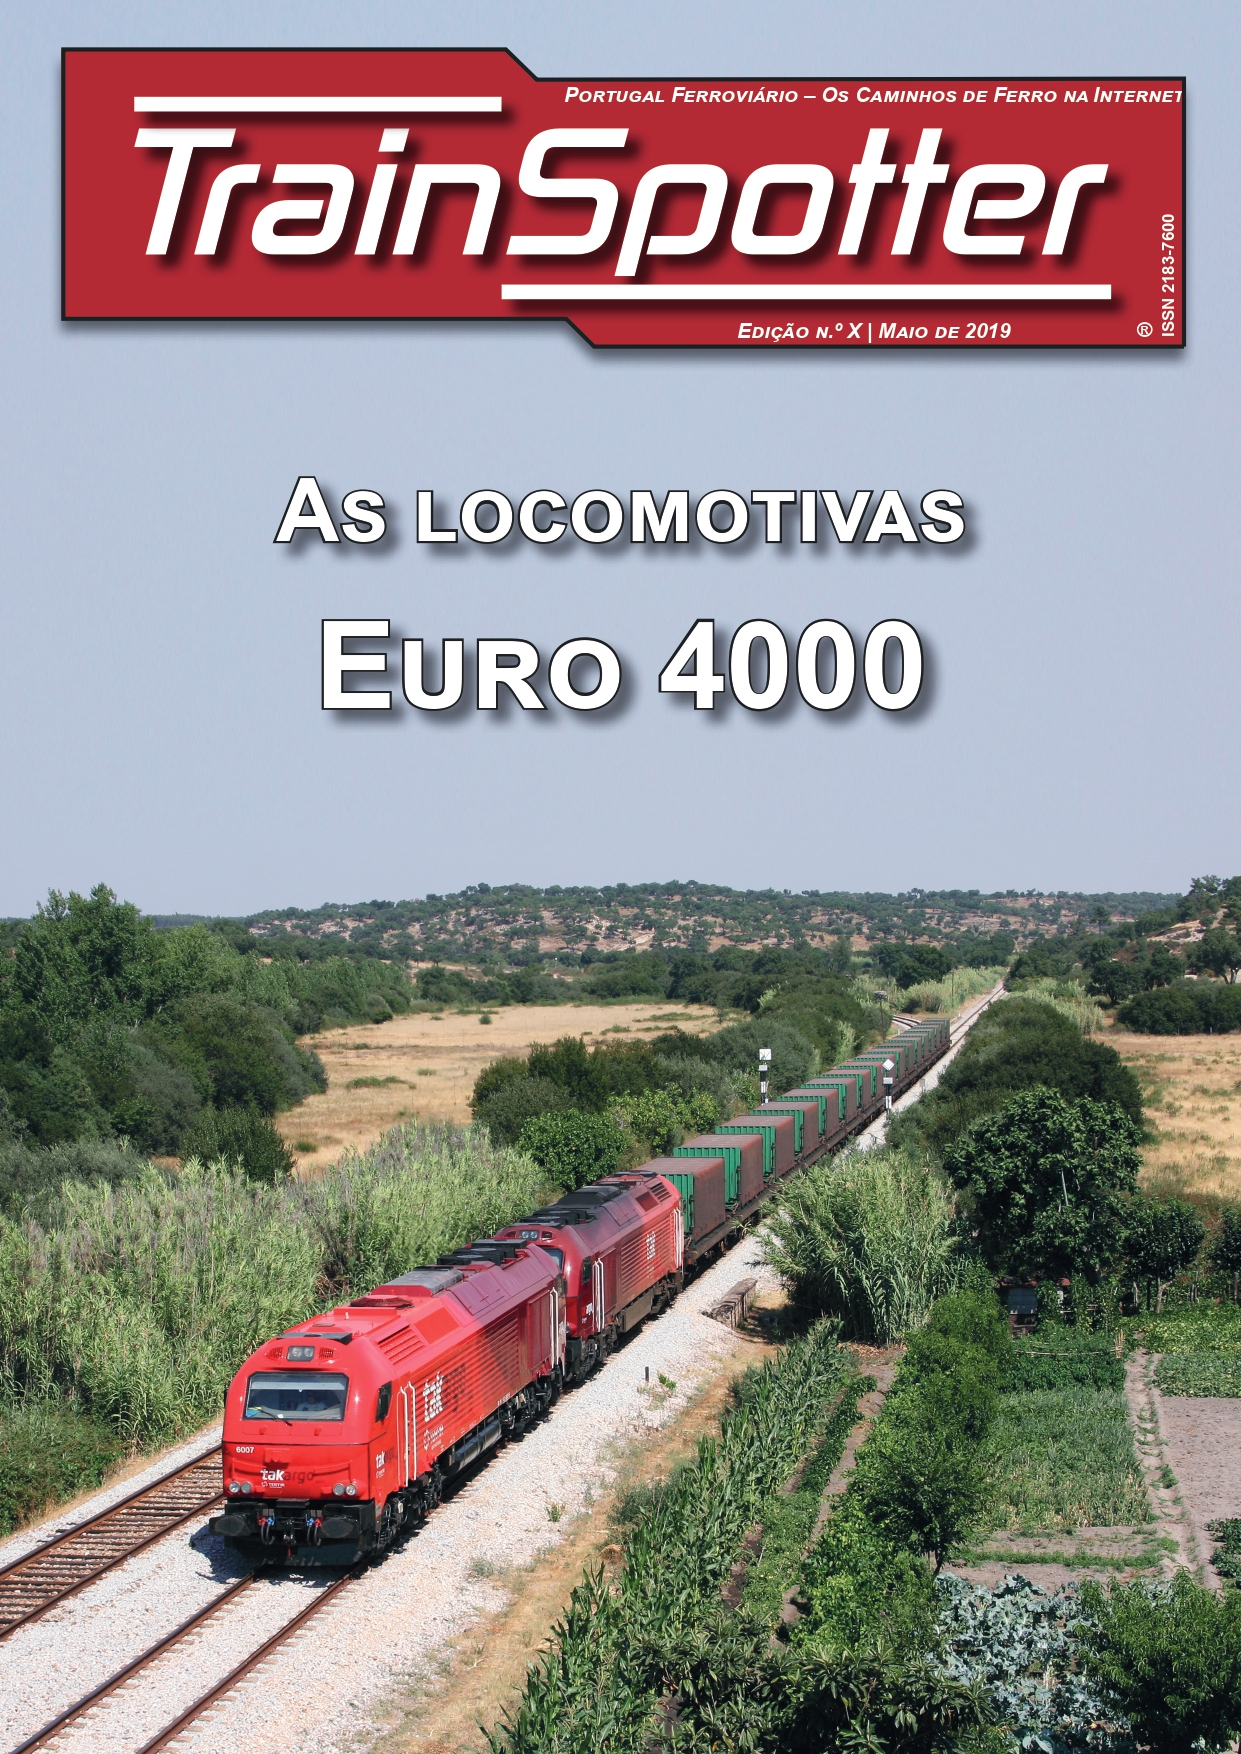 Trainspotter X – As locomotivas Euro 4000